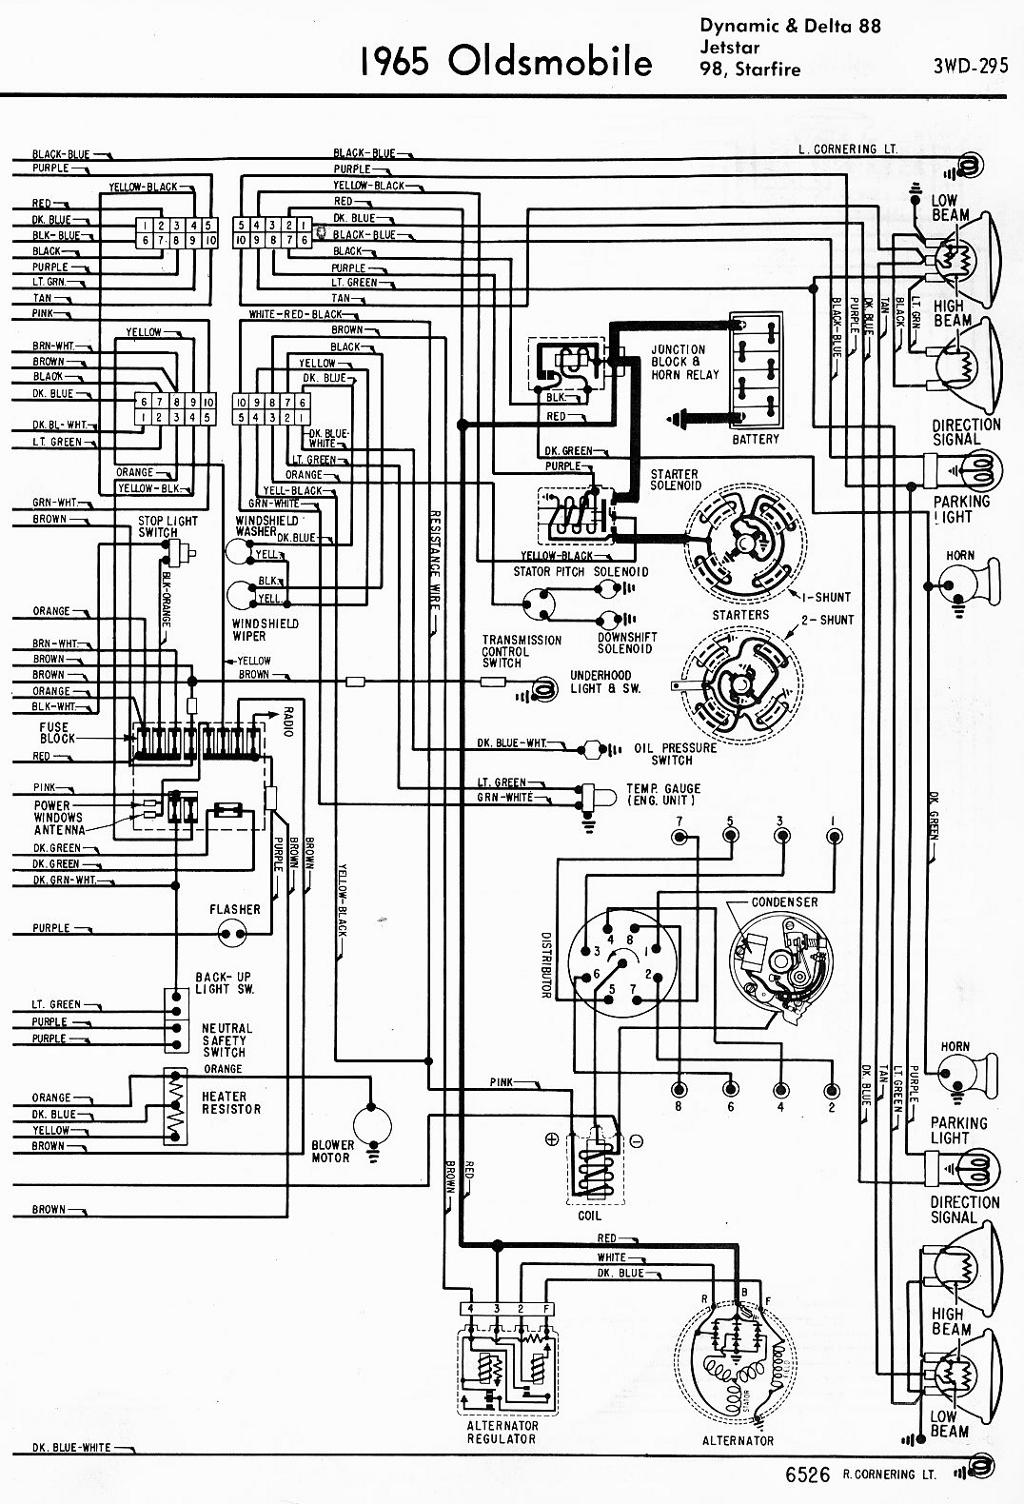 1995 Oldsmobile Silhouette Wiring Diagram Detailed Schematics 94 88 Electrical Diagrams Chevy Monte Carlo